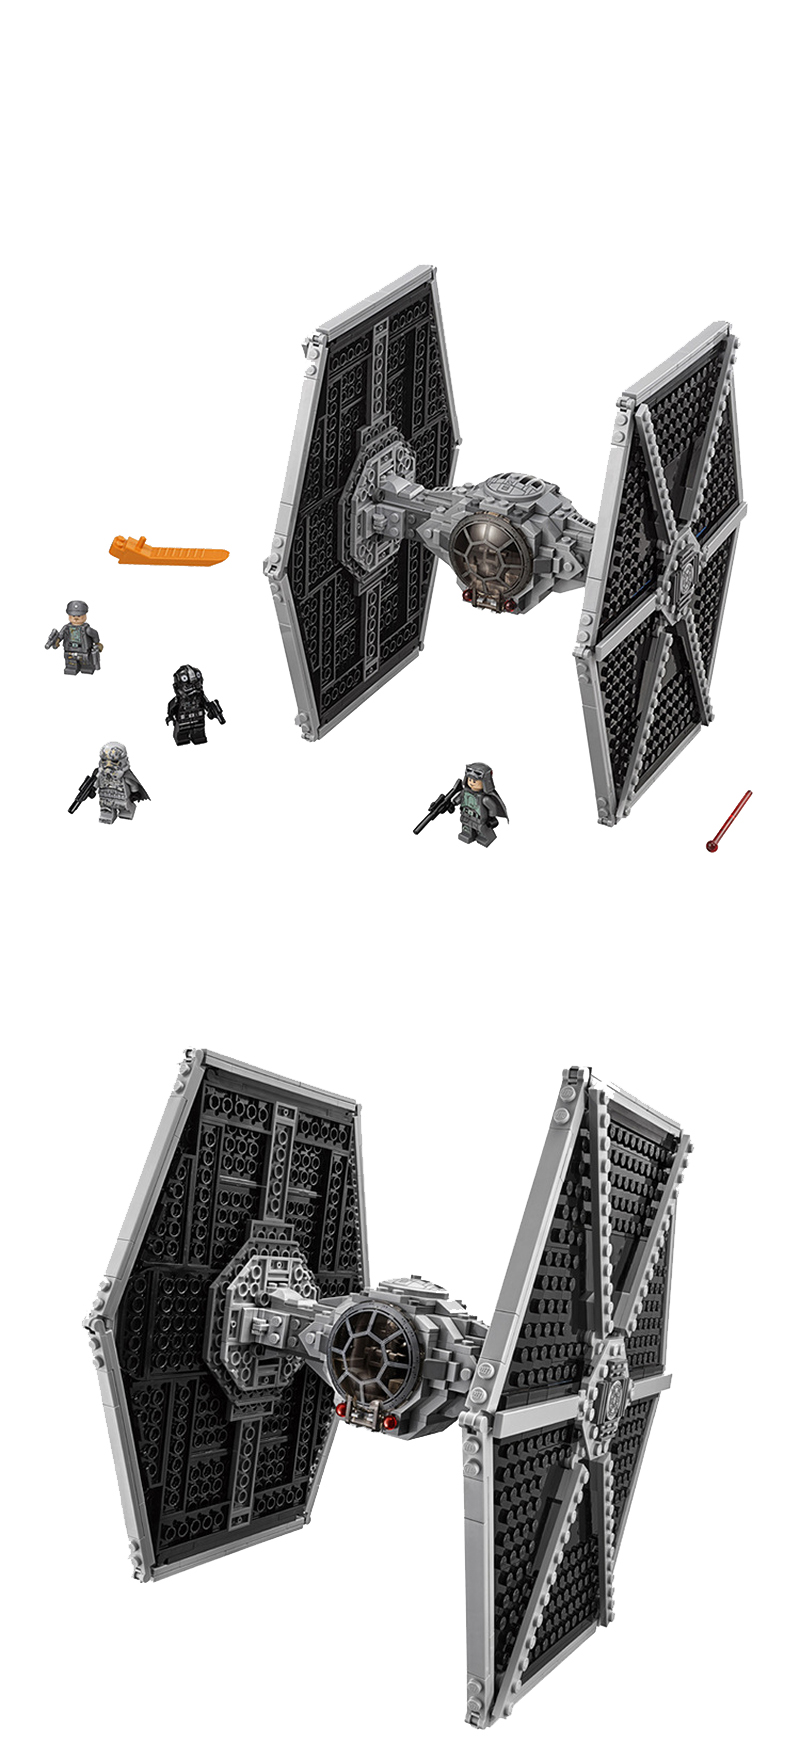 550pcs Star Series Wars Imperial TIE Fighter Building Blocks Iconic Attack Craft